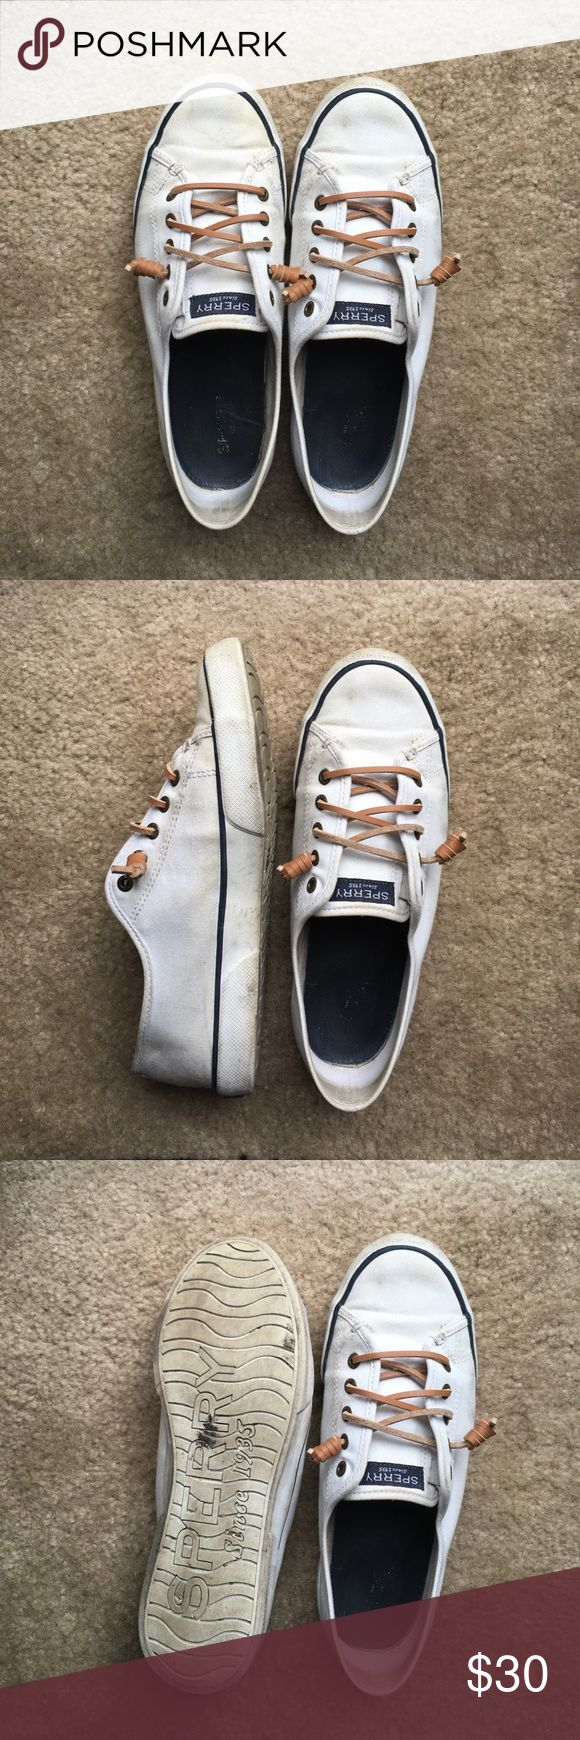 SPERRY CANVAS SHOES USED. Worn this April-July. These pictures as AS IS. These have never been cleaned. If you buy, I will clean and sanitize them! They are adorable and have a lot of life left in them. Sperry Top-Sider Shoes Sneakers